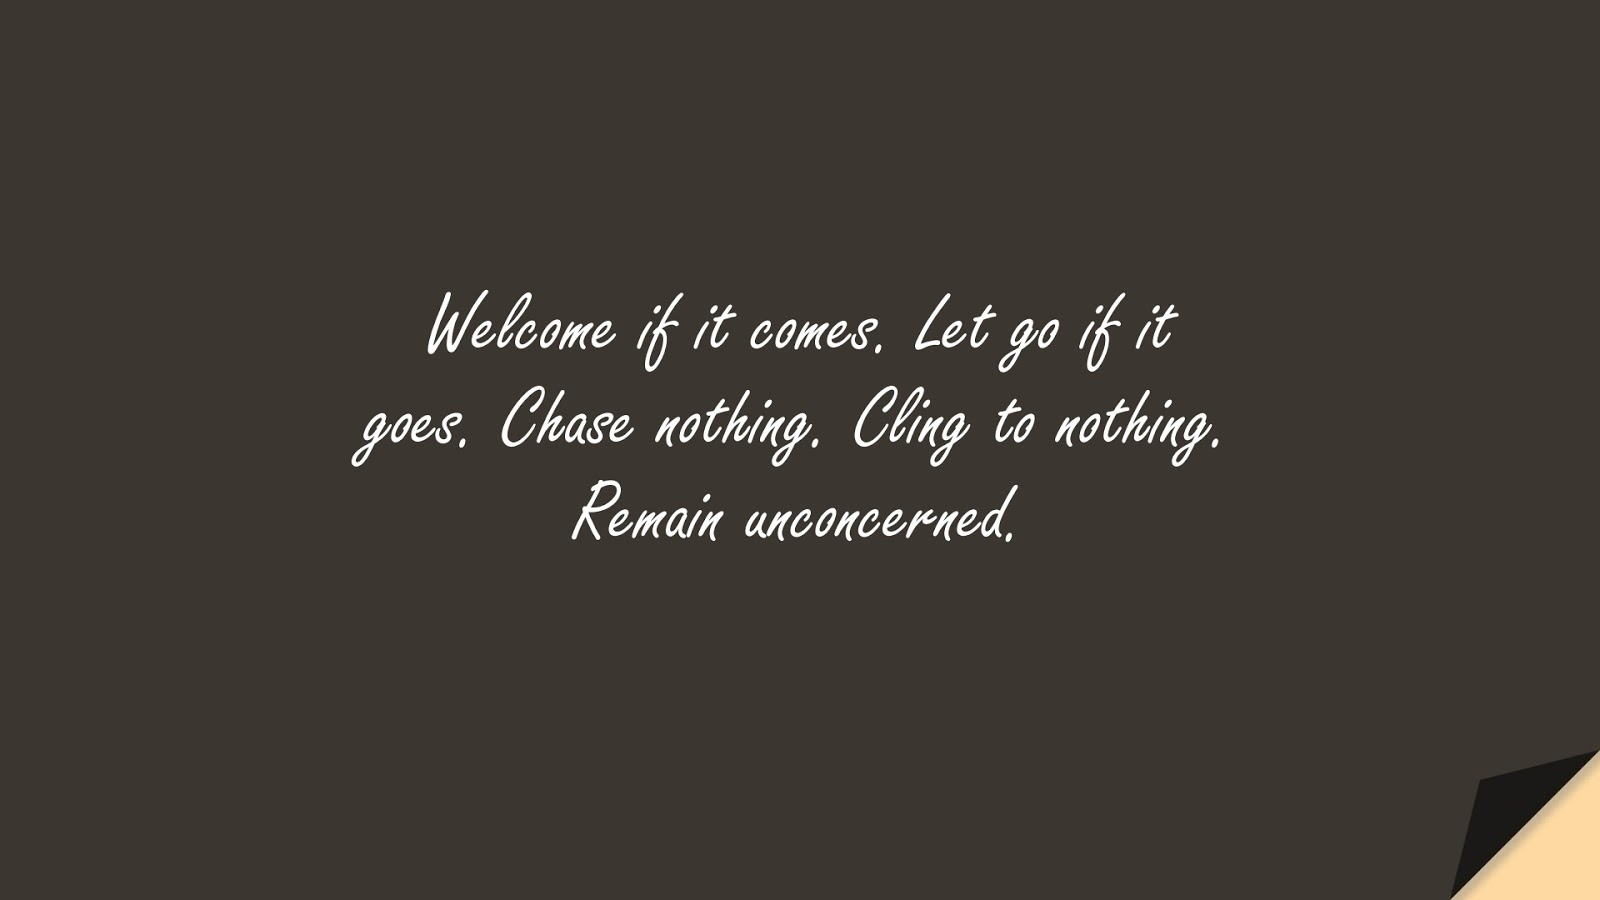 Welcome if it comes. Let go if it goes. Chase nothing. Cling to nothing. Remain unconcerned.FALSE